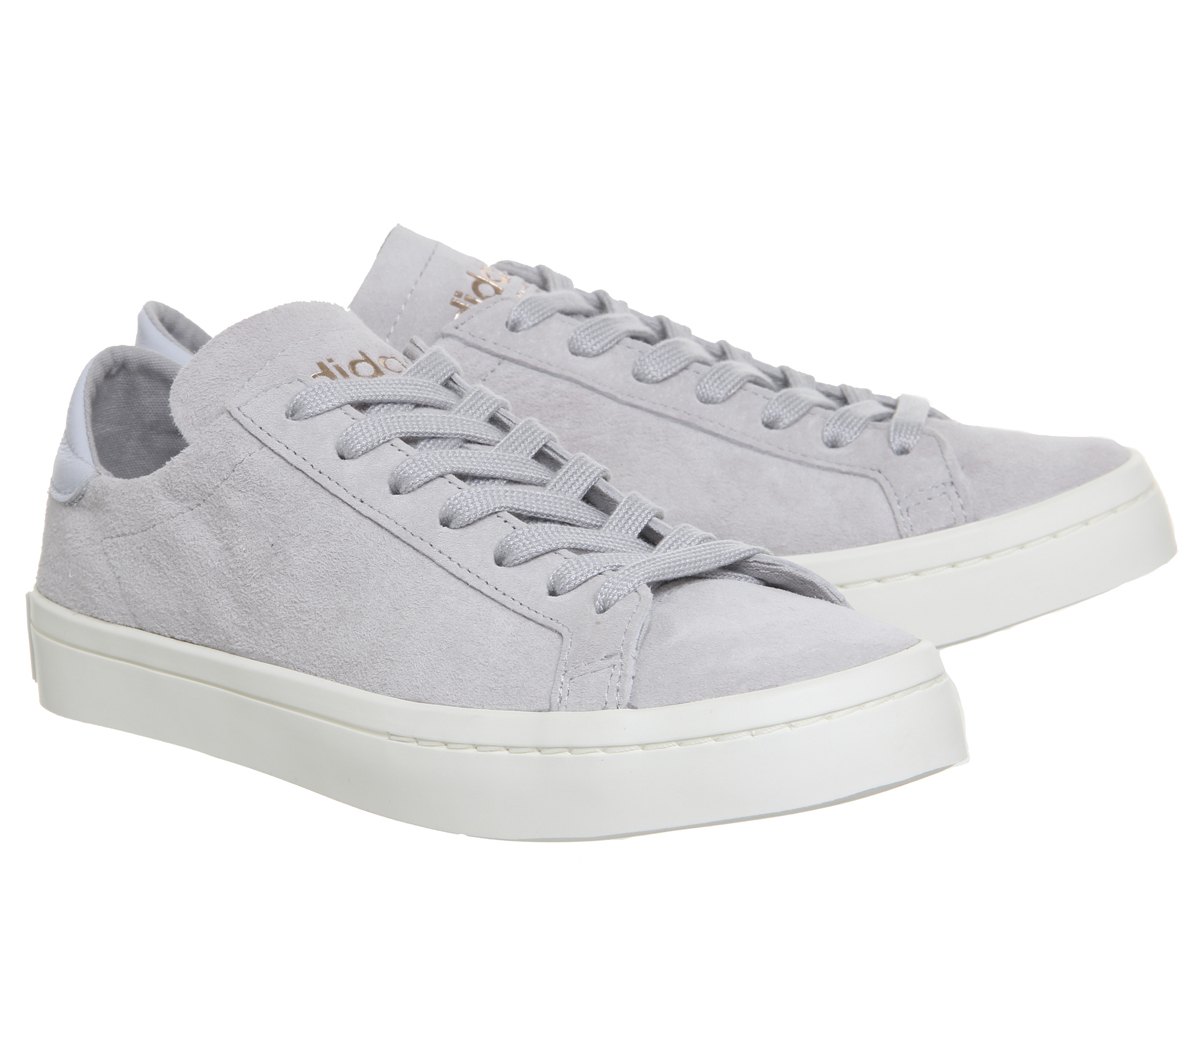 Hombre Hombre Hombre Adidas Court Vantage Trainers Gris TWO AERO Azul OFF Blanco EXCLUSIVE Traine 870126